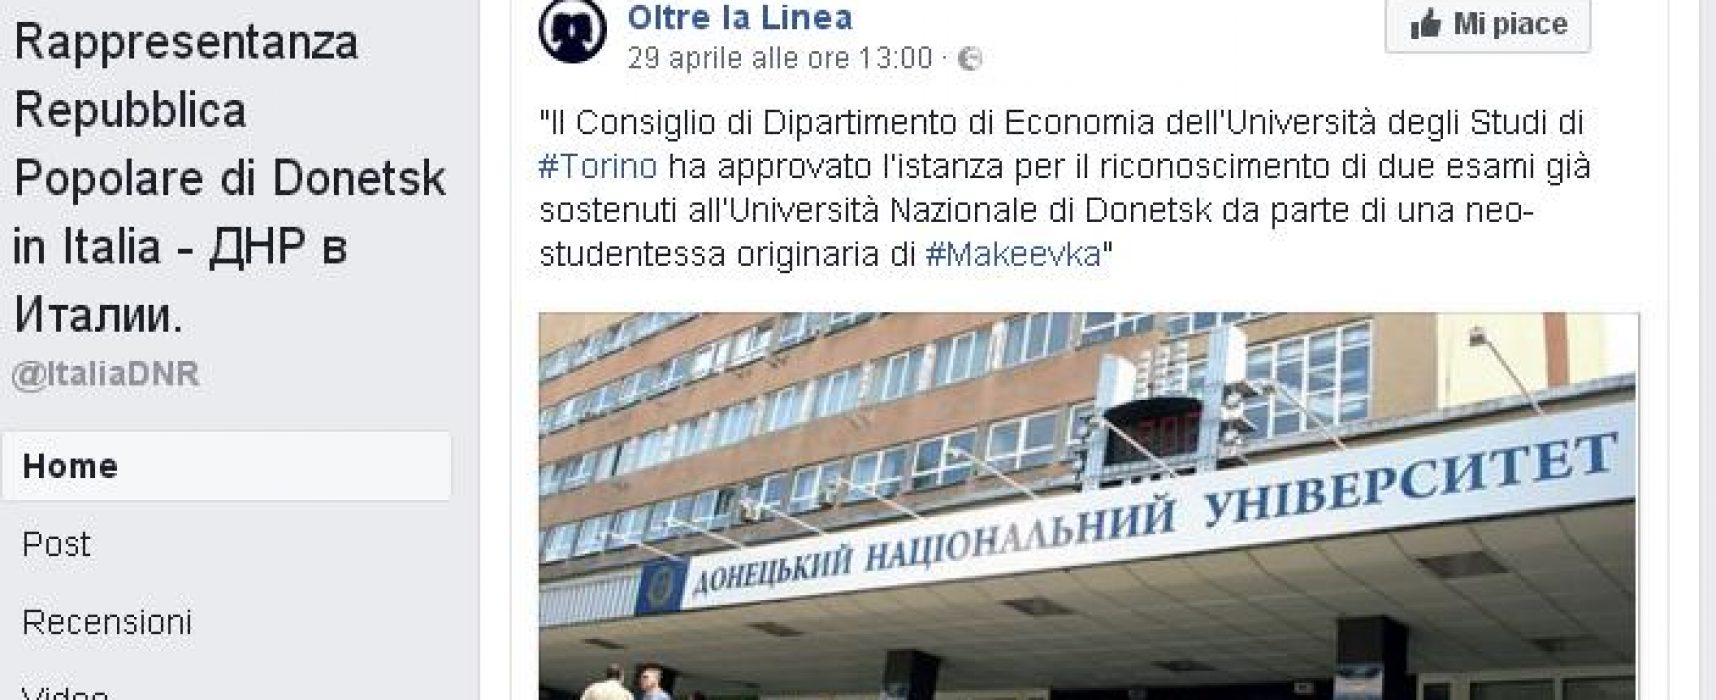 Fake: University of Turin Recognizes so-called Donetsk People's Republic Diplomas